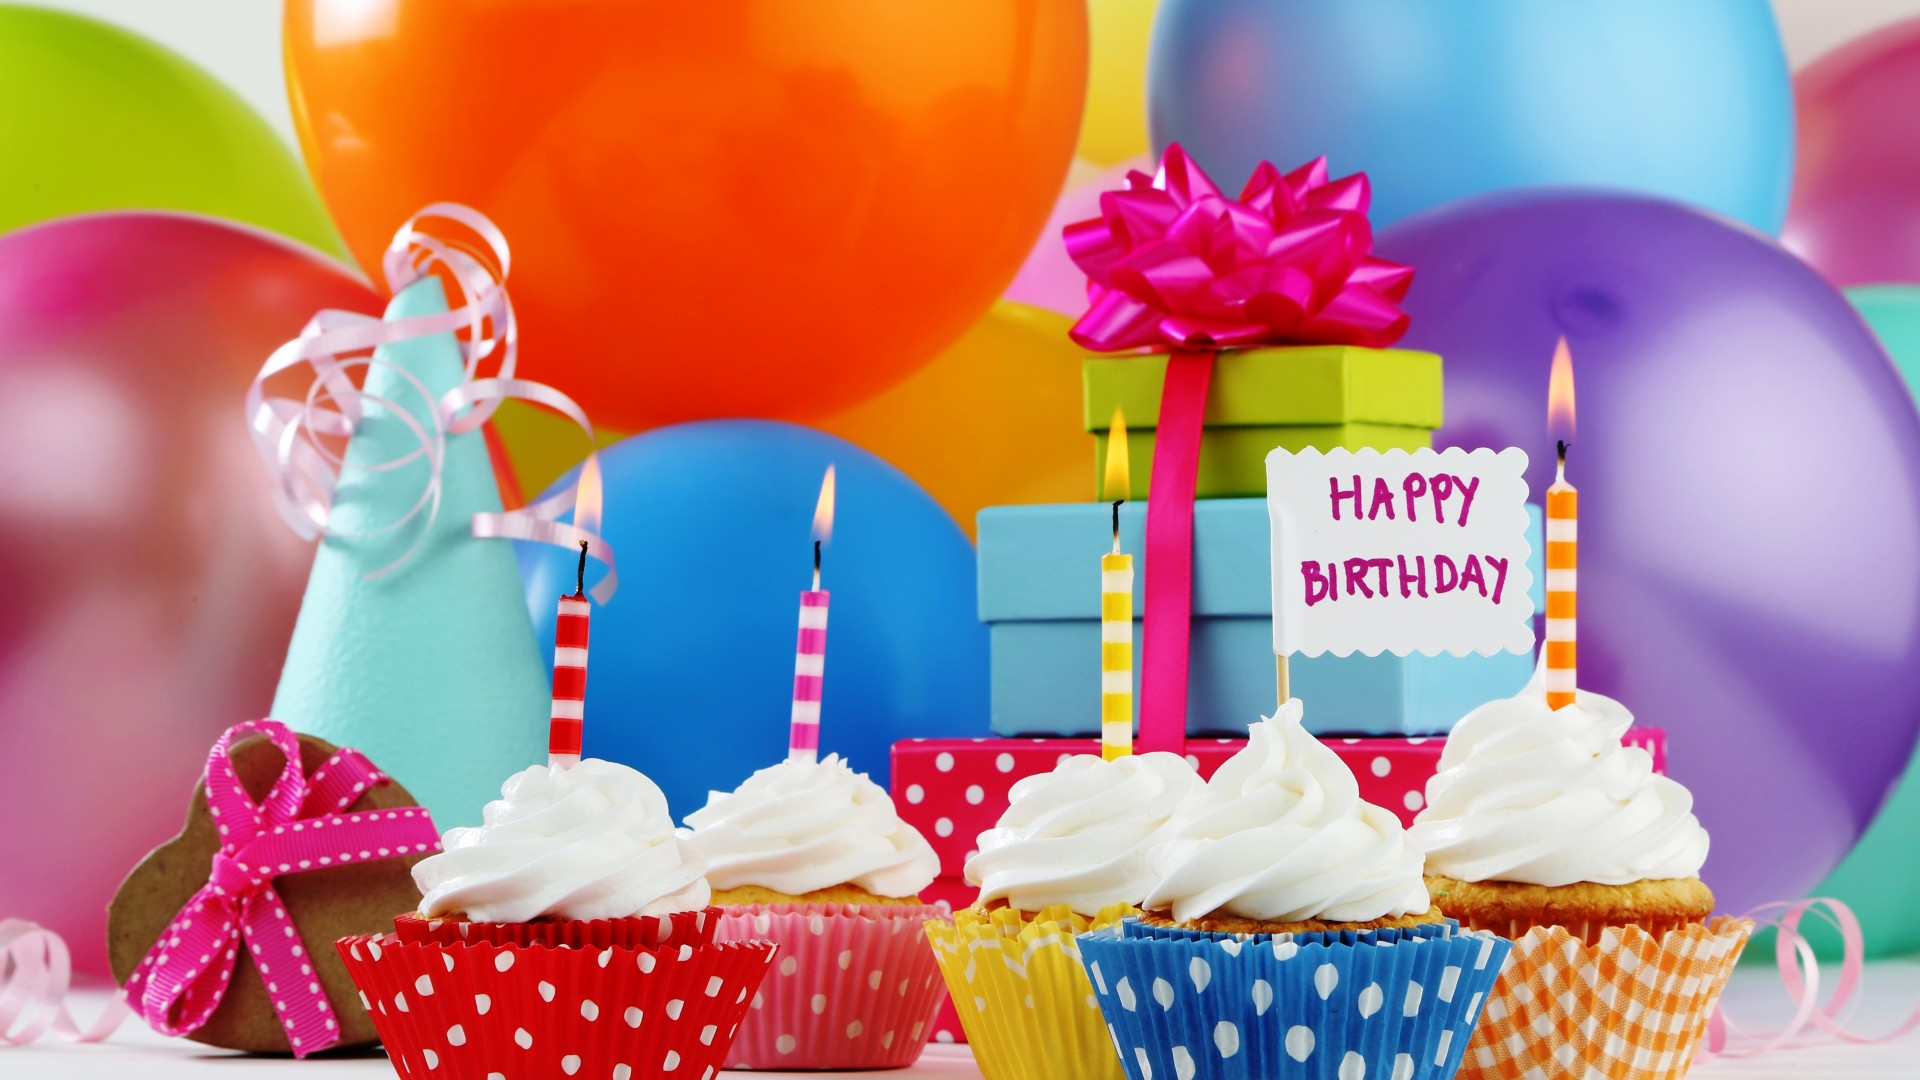 high quality birthday images ; happy-birthday-wallpaper-High-Resolution-Download1